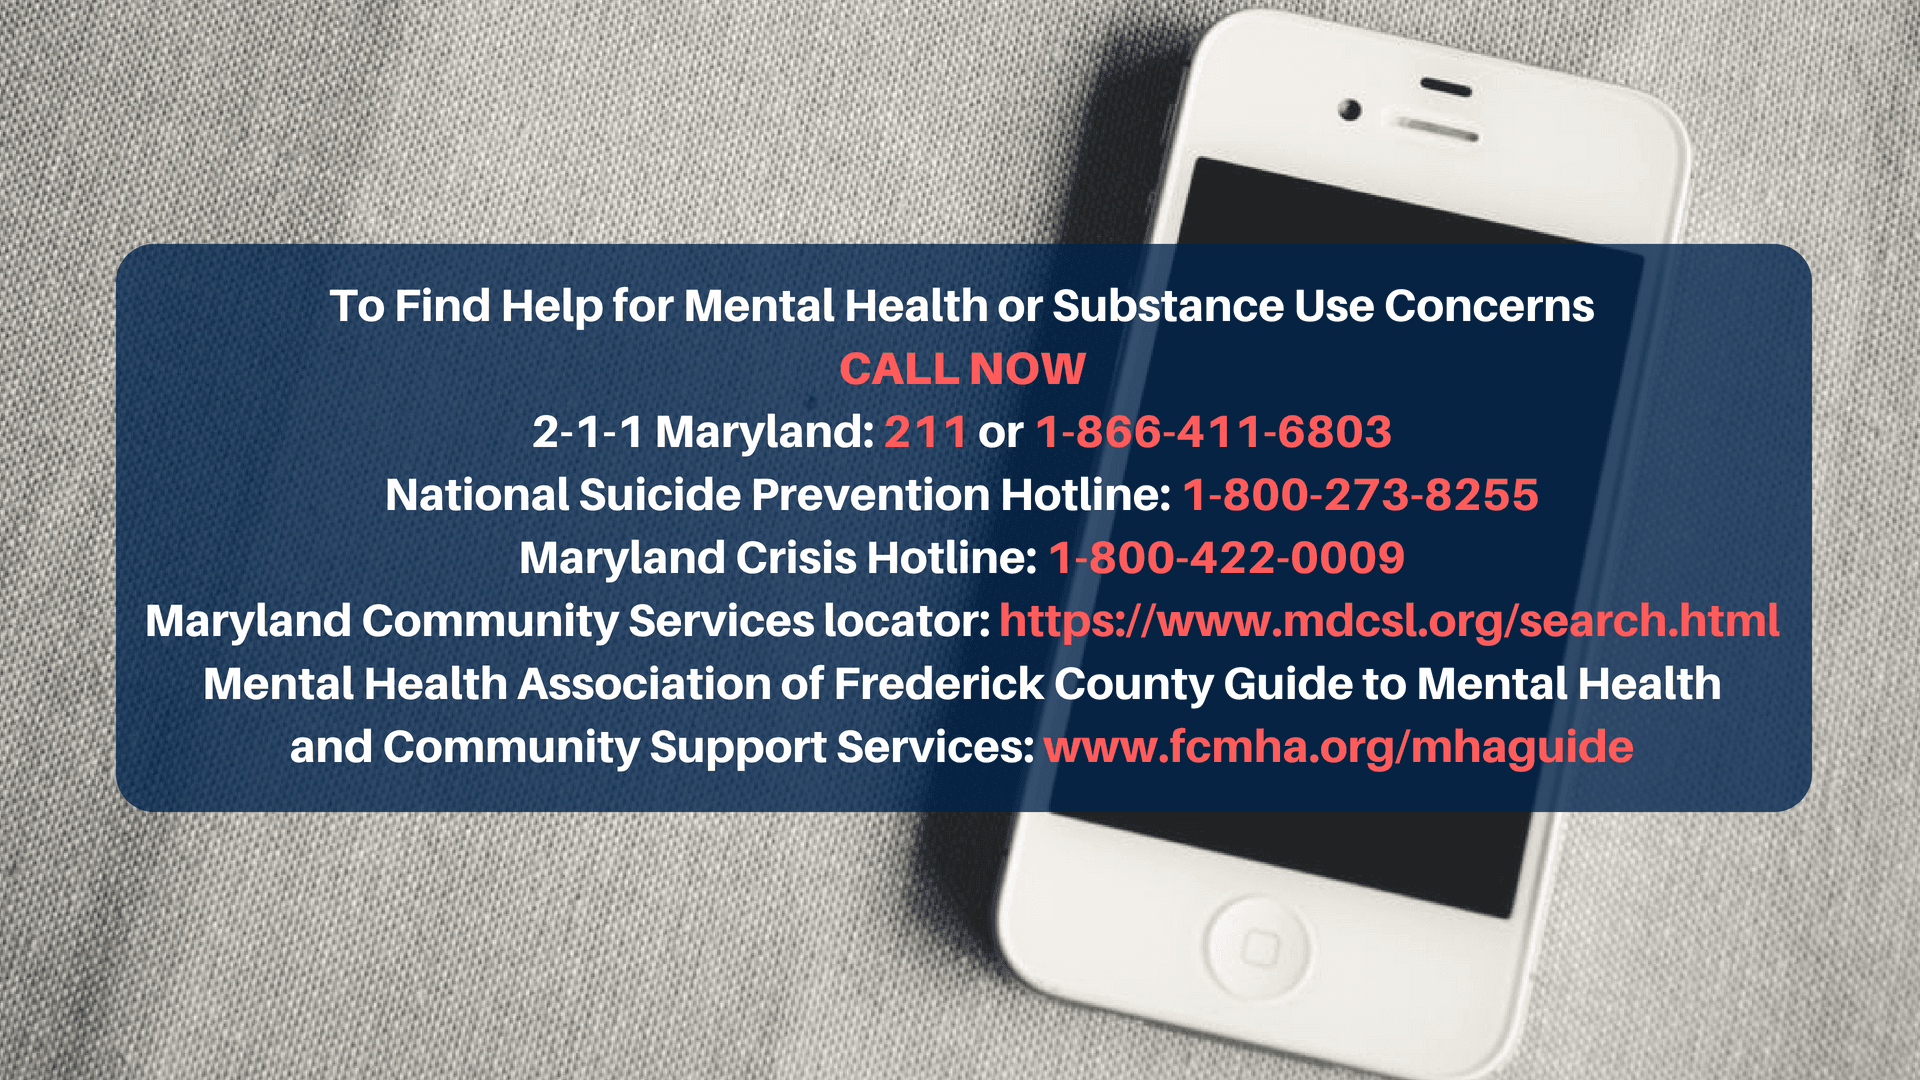 To Find Help for Mental Health or Substance Use Concerns  Call Now 2-1-1 Maryland: 211 or 1-866-411-